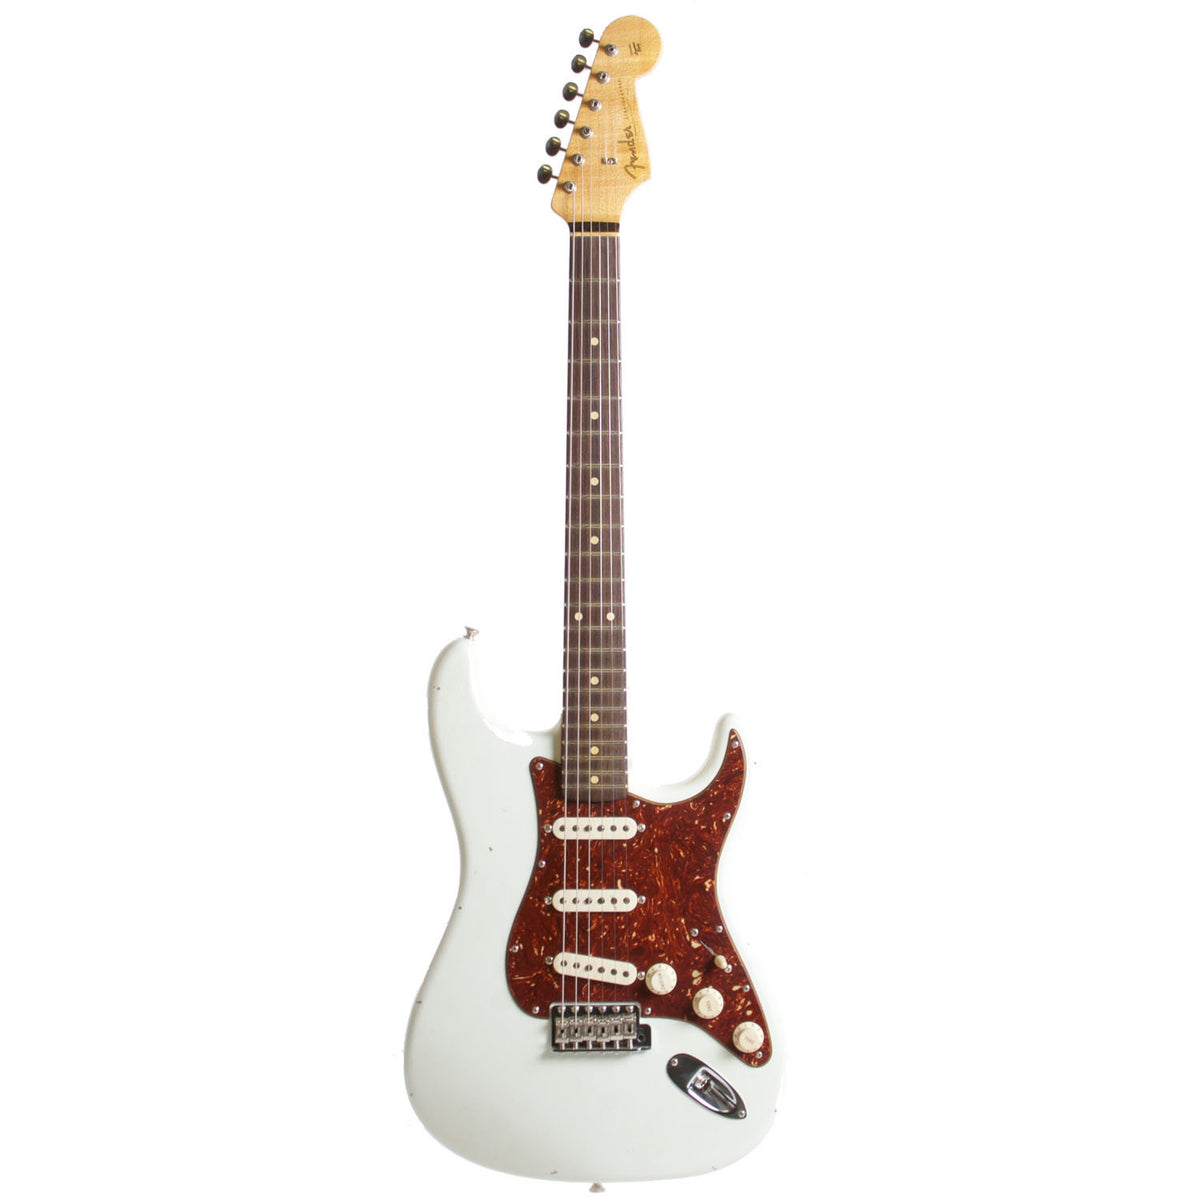 2015 Fender Custom Shop Rocking Dog '62 Stratocaster Olympic White - Garrett Park Guitars  - 3